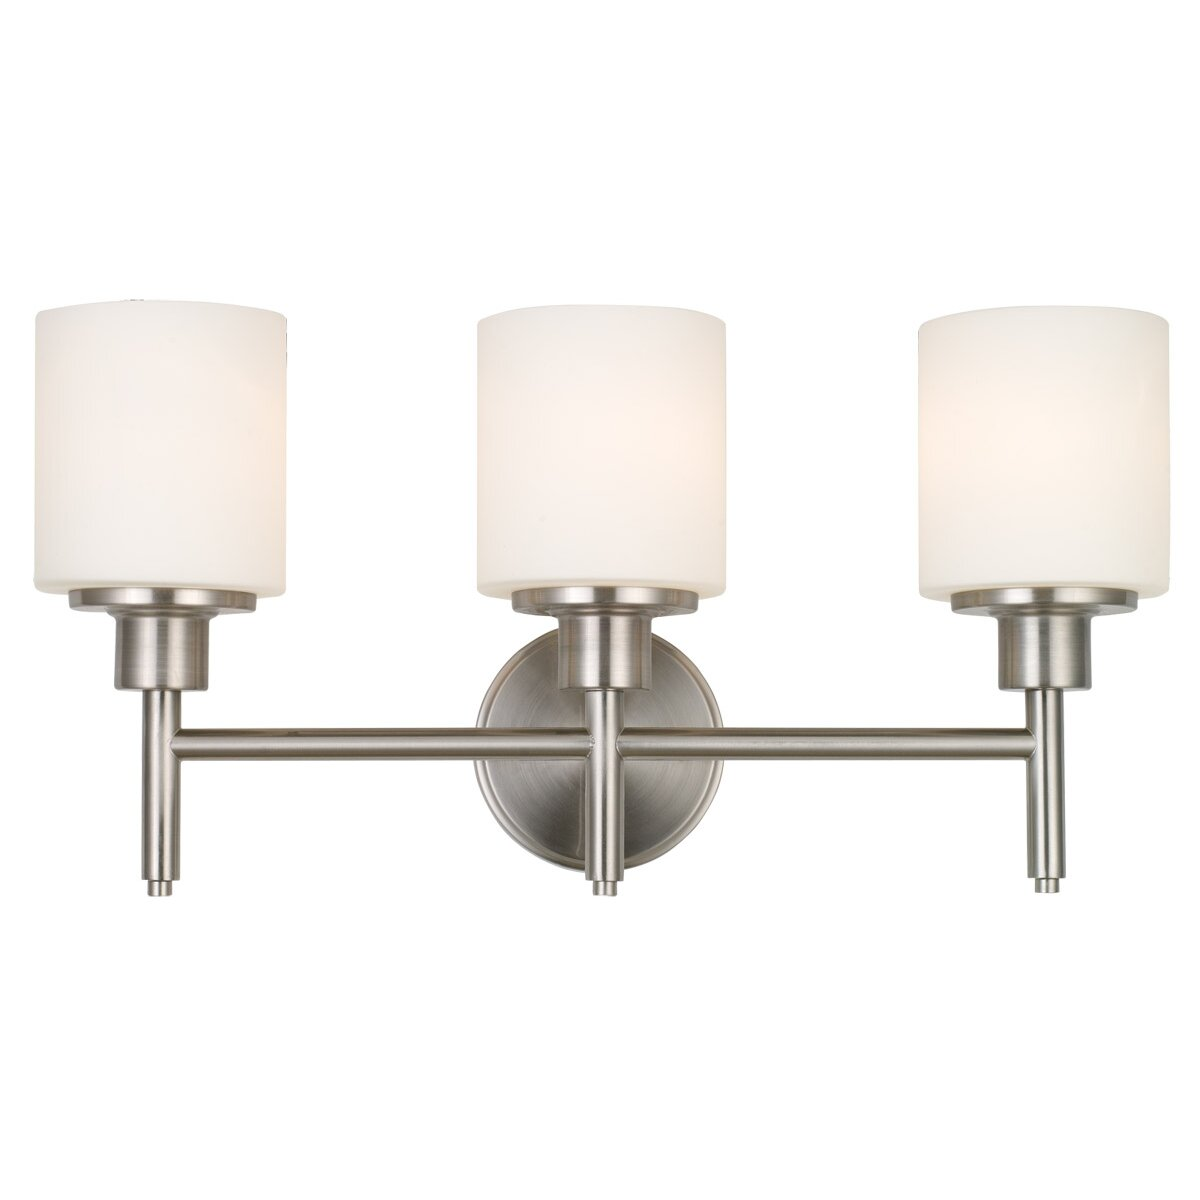 Design House Aubrey 3 Light Bath Vanity Light & Reviews